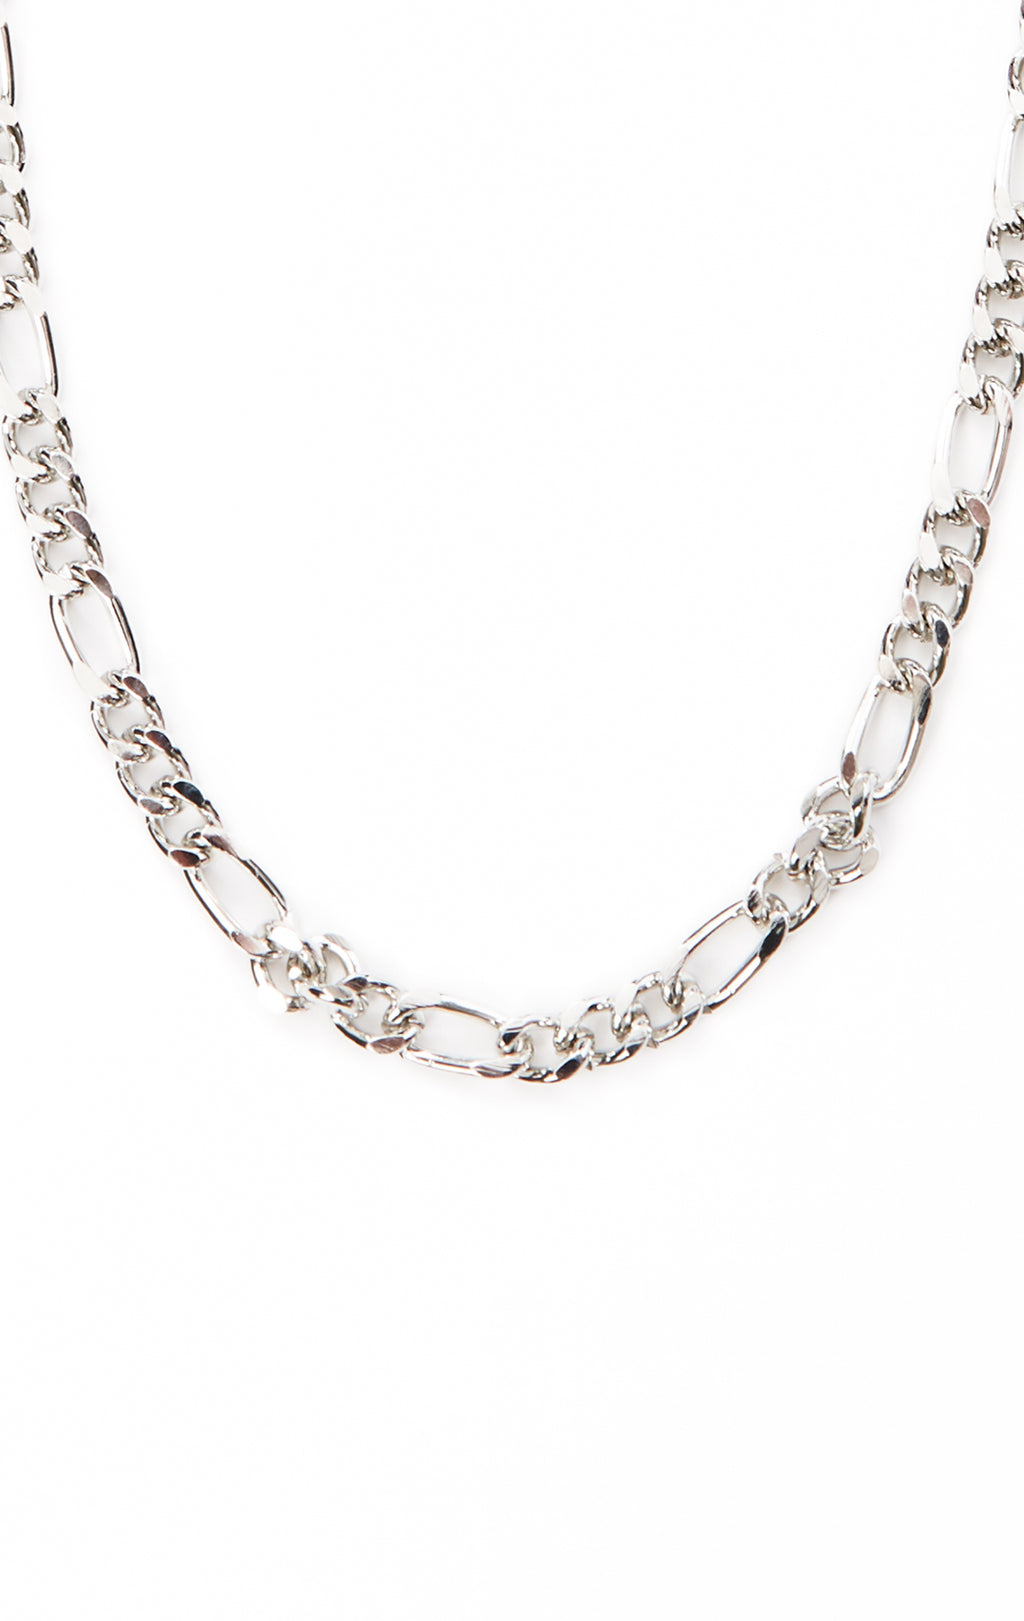 LARGE FIGARO CHAIN LARIATE NECKLACE